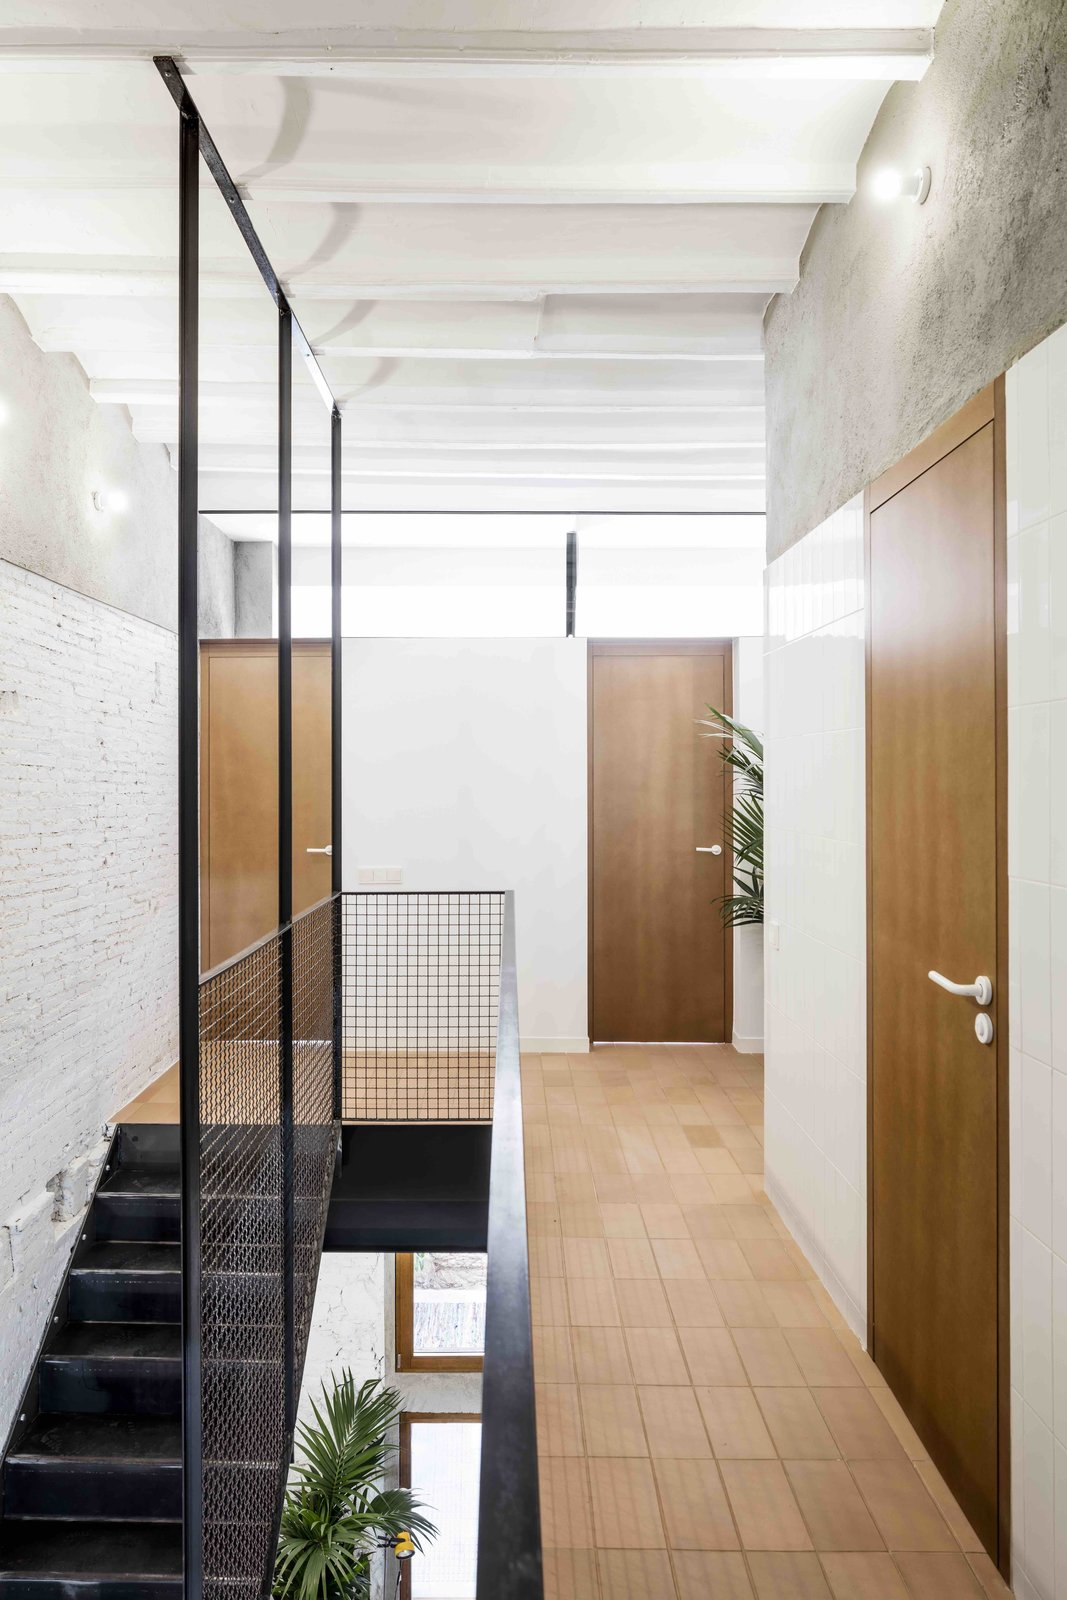 Staircase, Metal Railing, and Metal Tread  Photo 6 of 13 in This Double-Height Apartment in   Barcelona Features Historic Details and a Floating Staircase